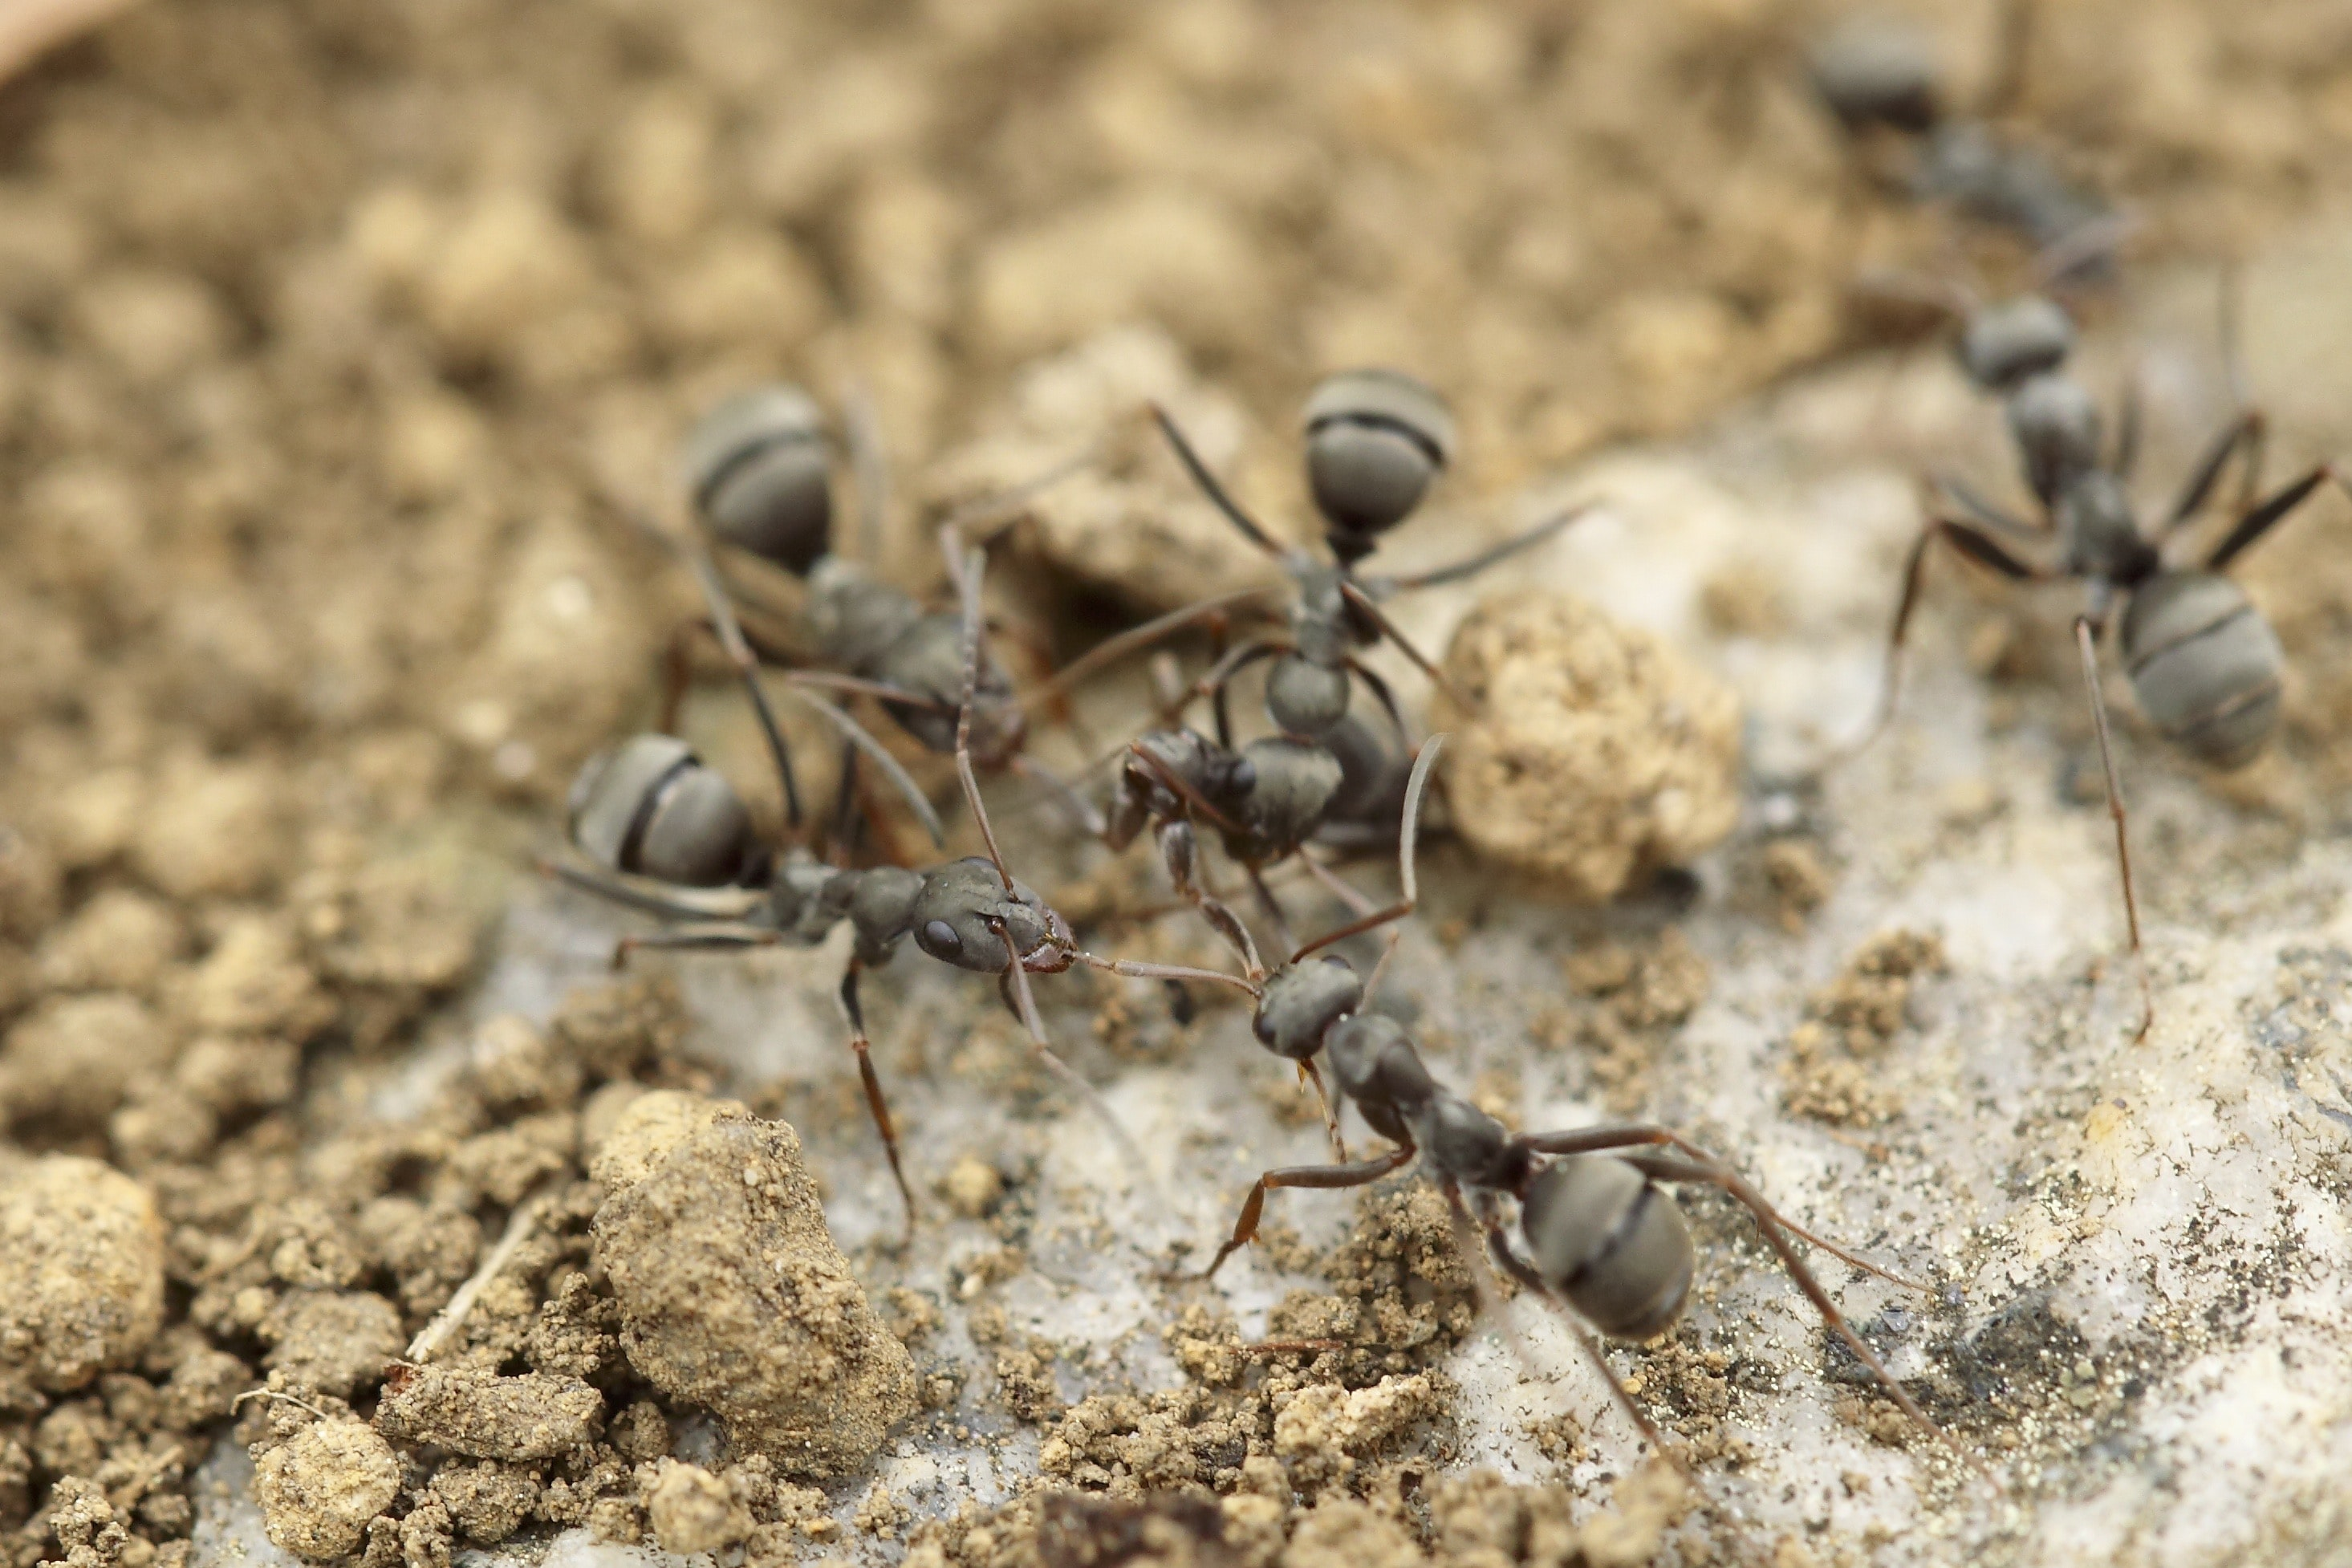 Group of ant insects working together on sandy ground